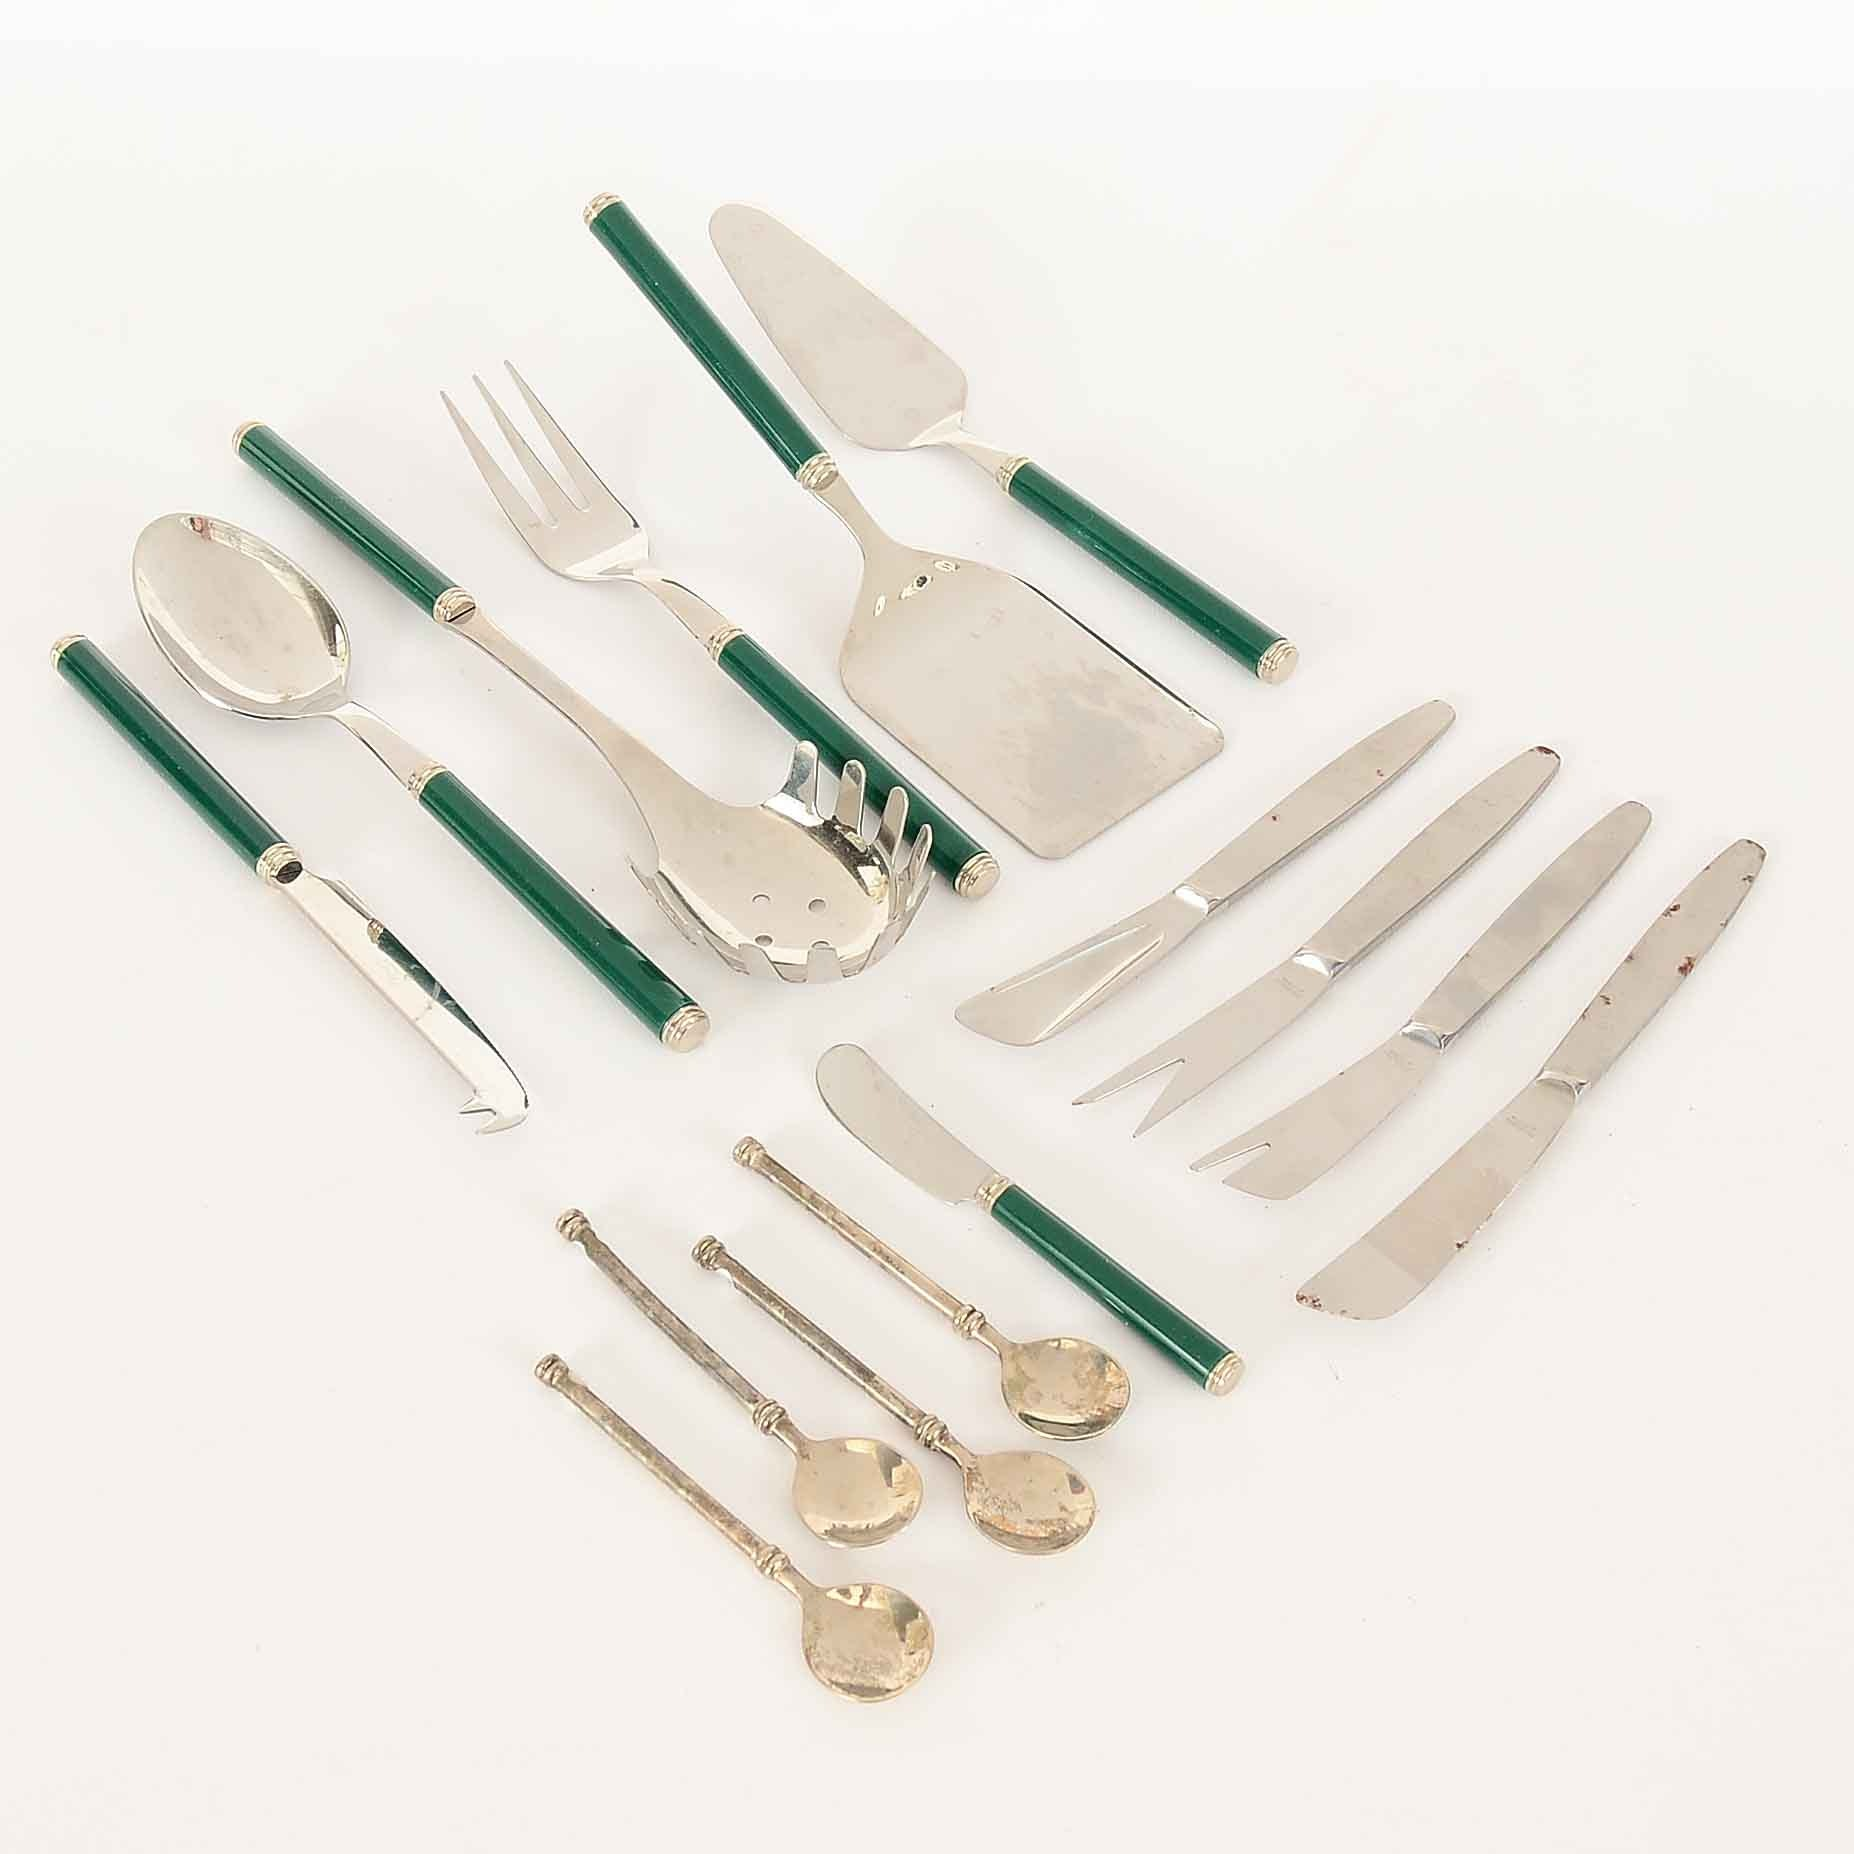 Assorted Flatware and Serveware